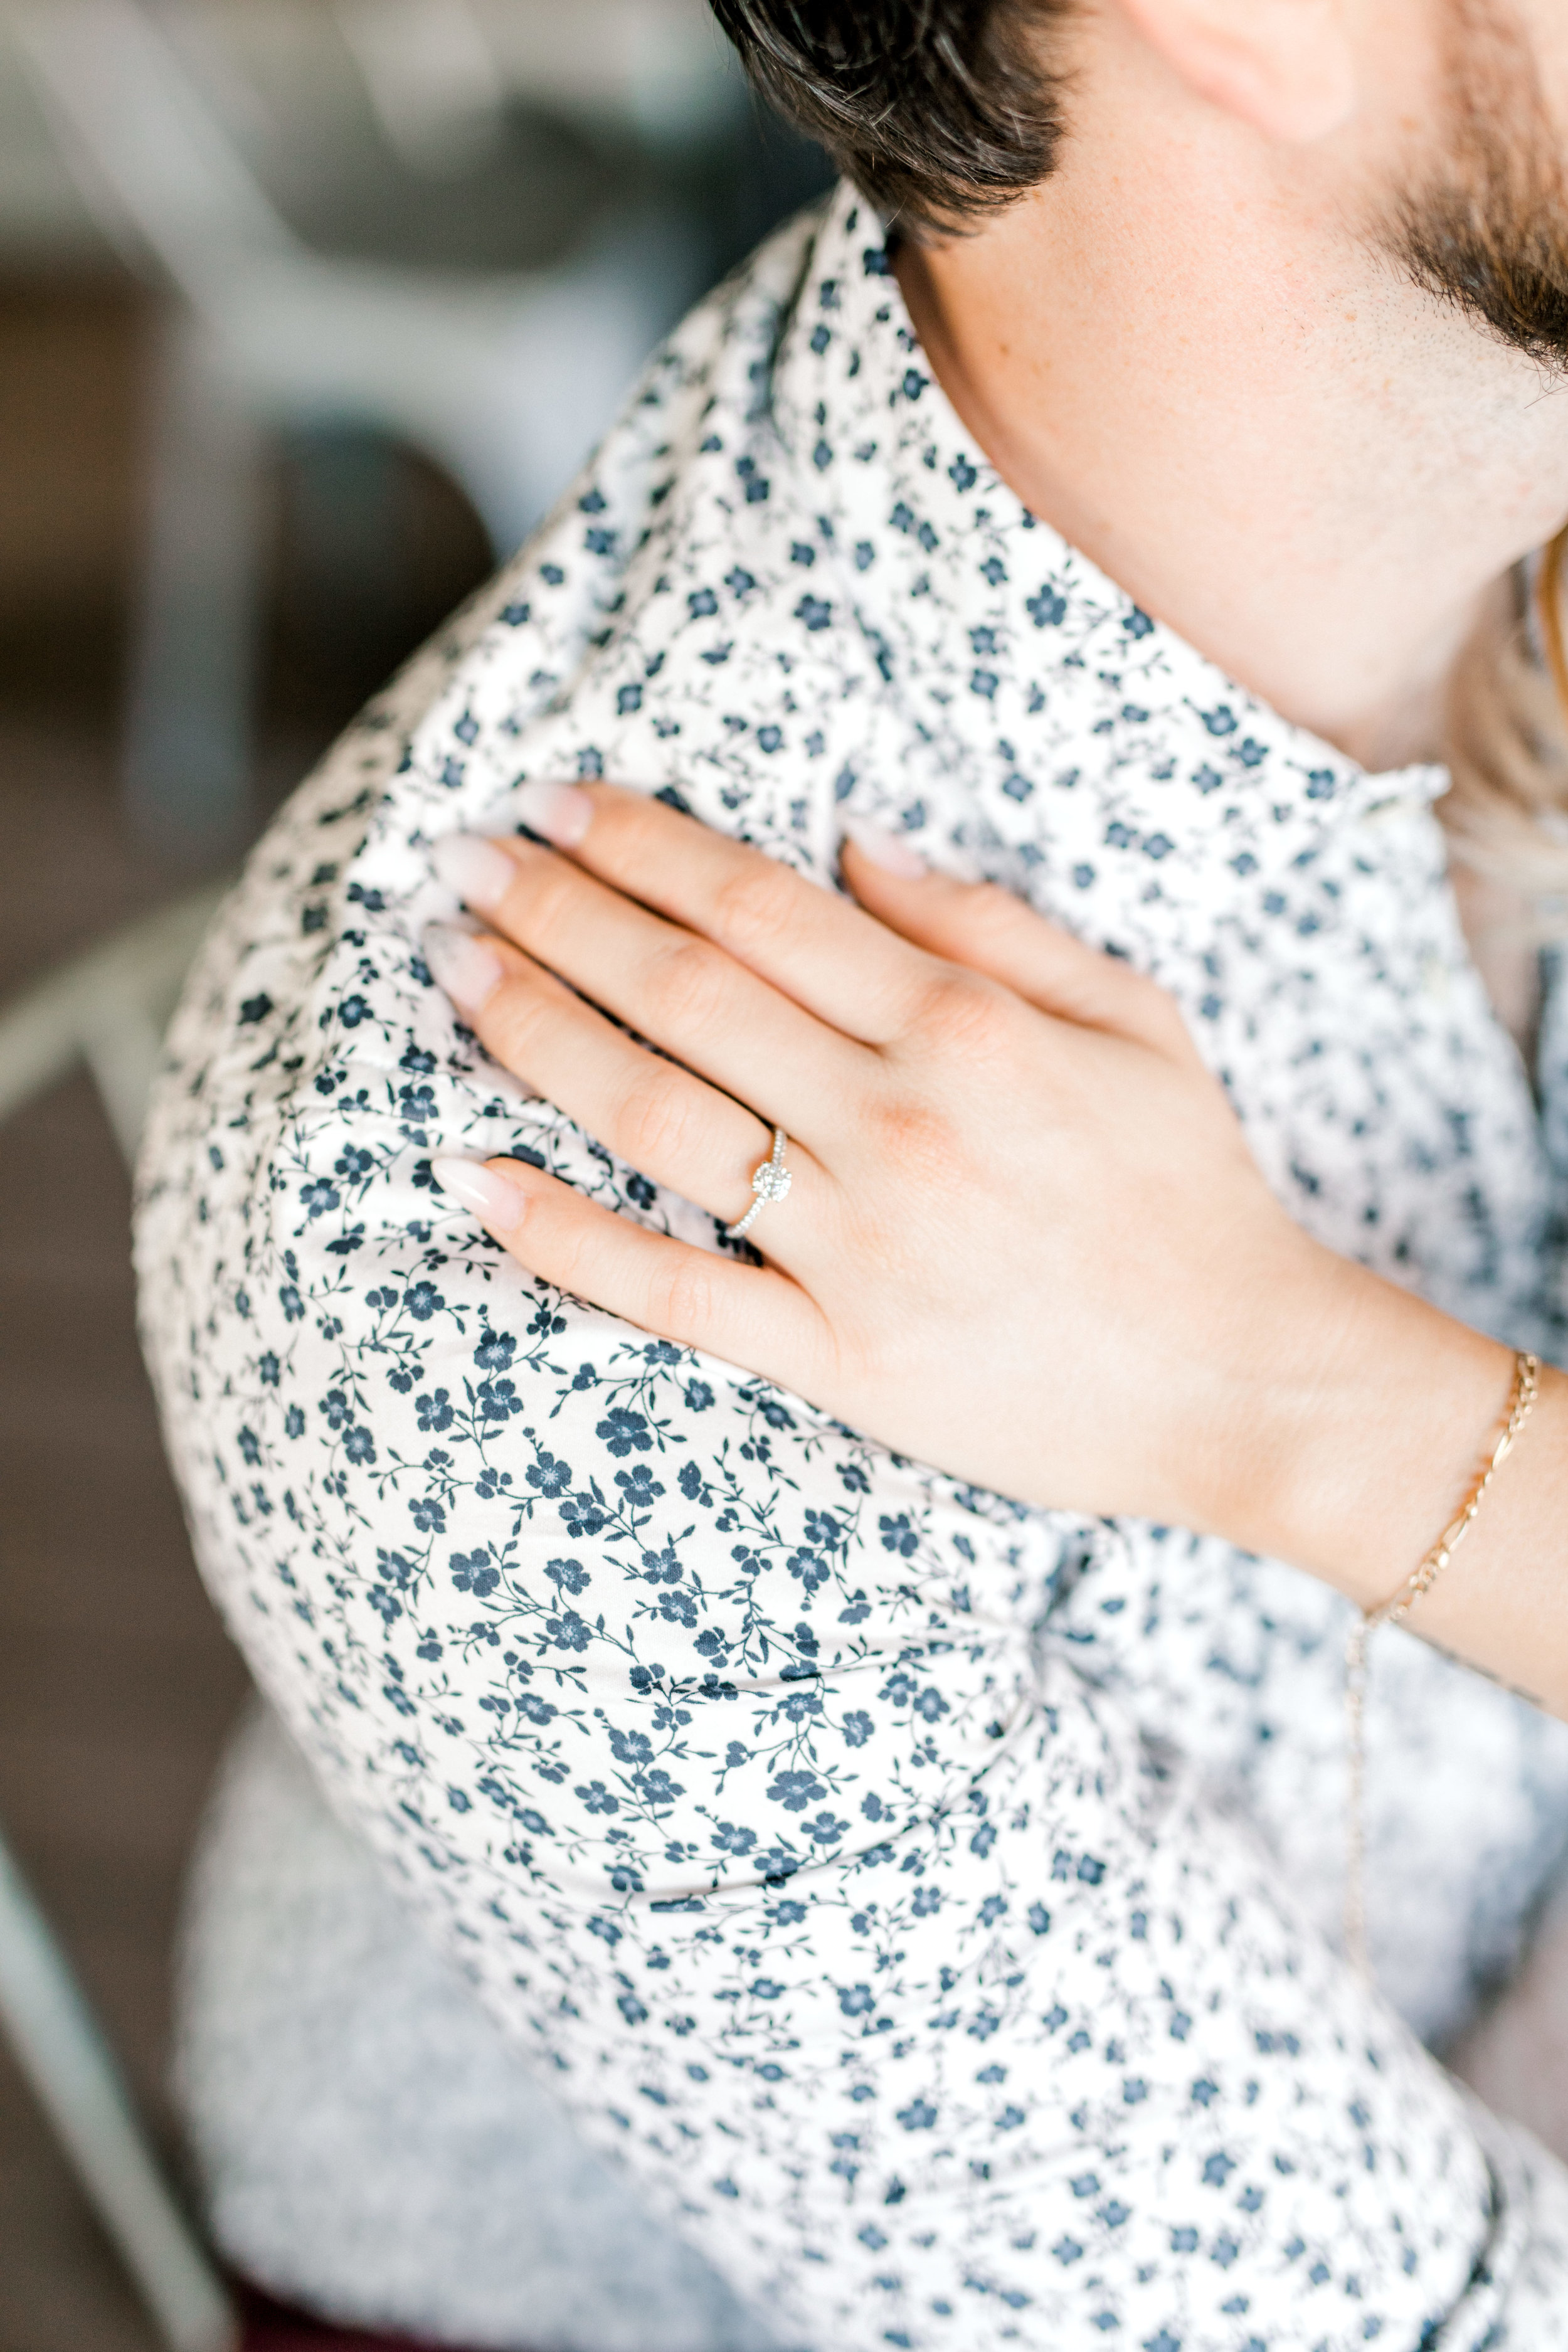 Nikki rings looks so good against the floral patterned shirt that Dale wore at their bright and romantic fall engagement session at the Revolution House in Old City, Philadelphia.